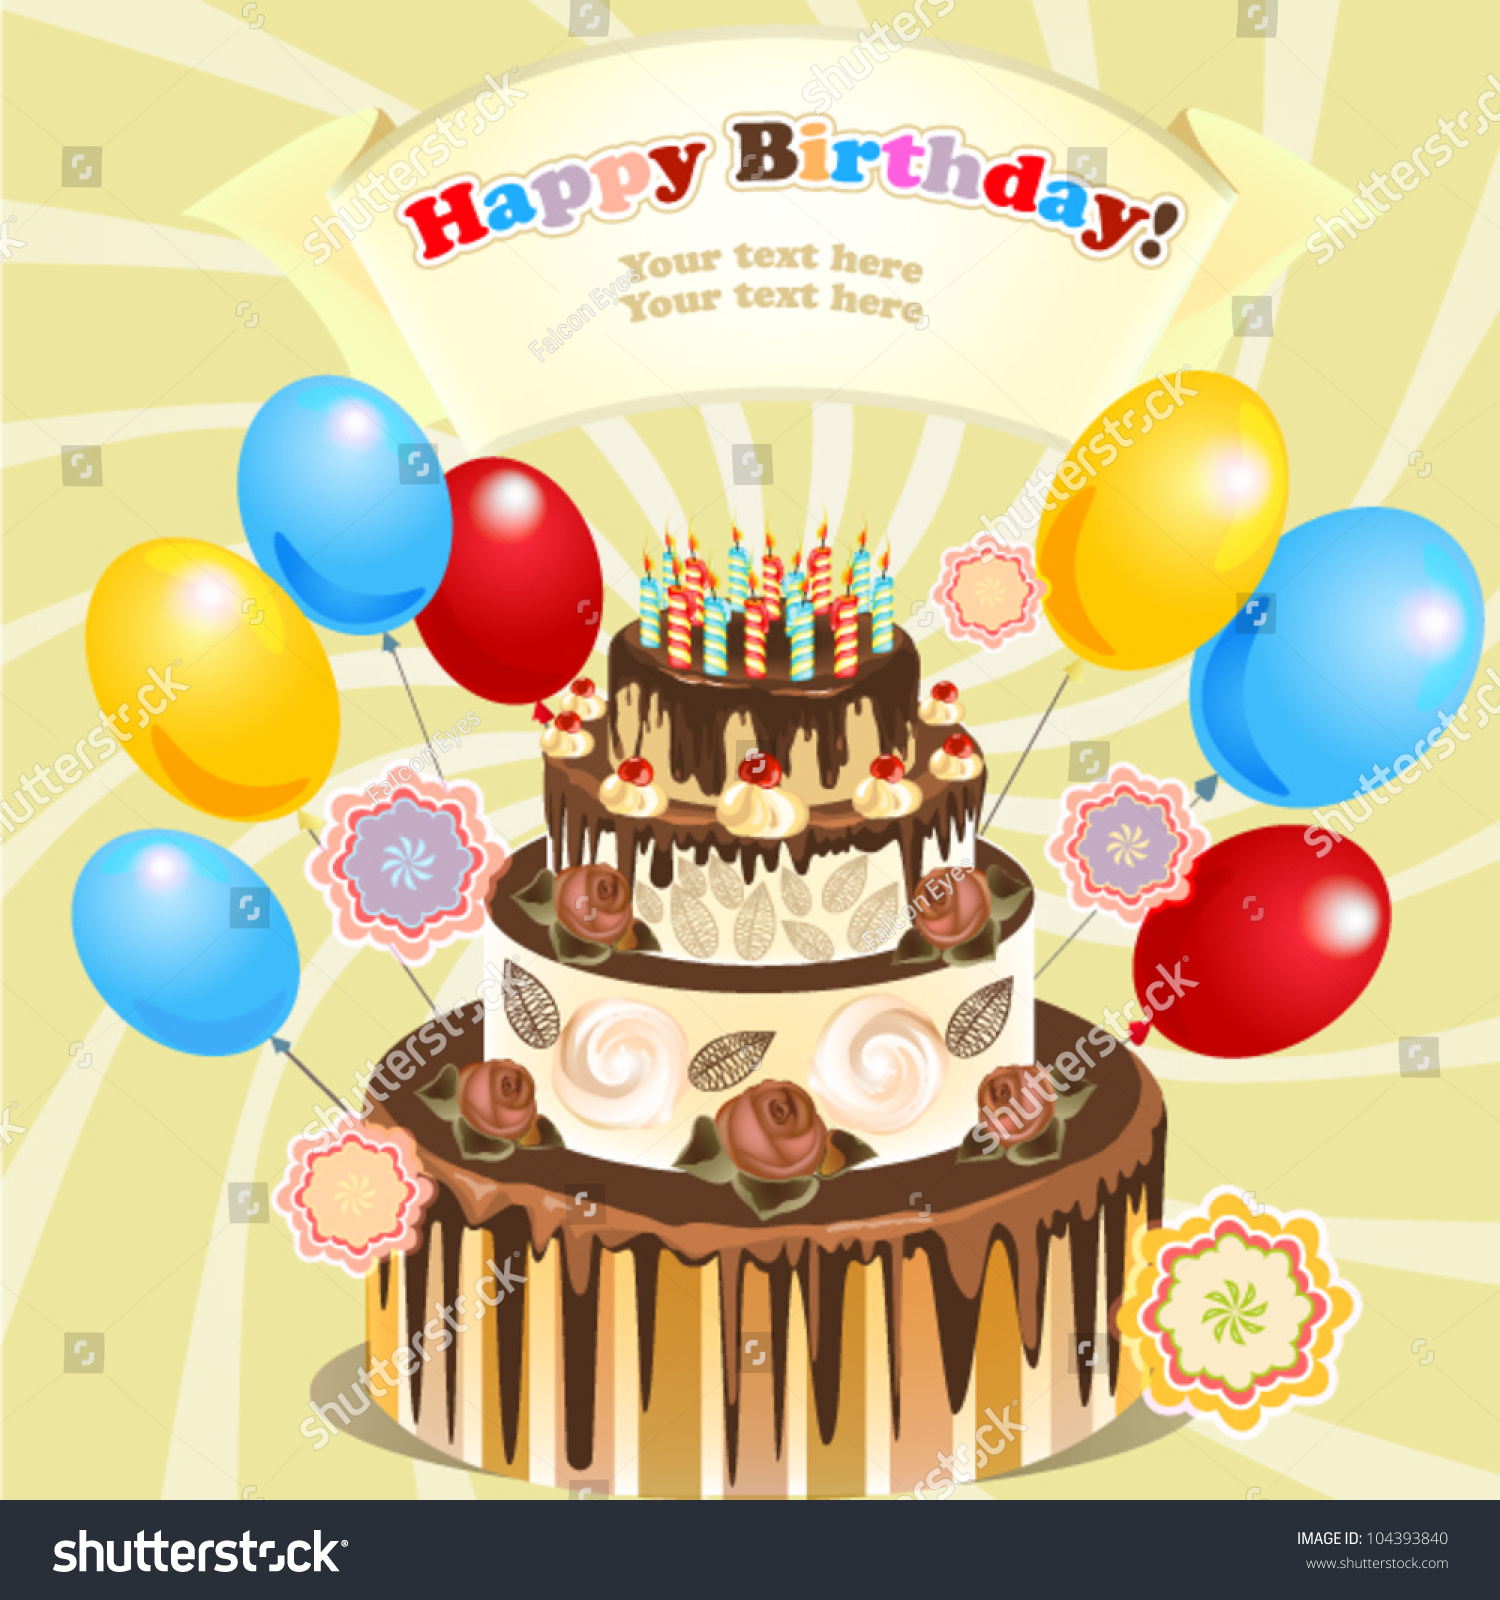 Big Cake With Candles And Balloons, Original Birthday Greeting Stock ...